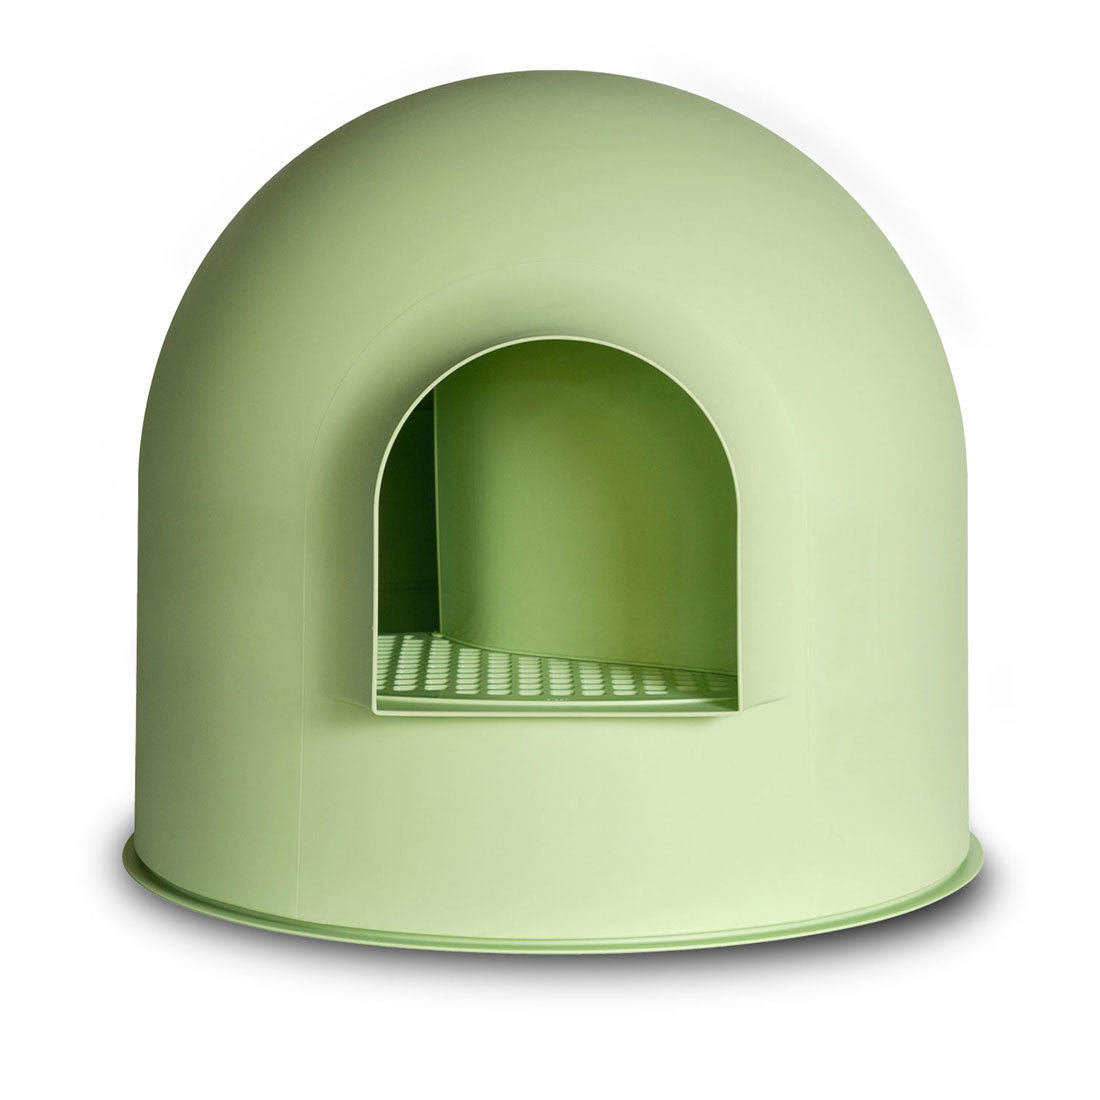 Pidan Igloo Snow House Portable Hooded Cat Toilet Litter Box Tray House with Scoop - green